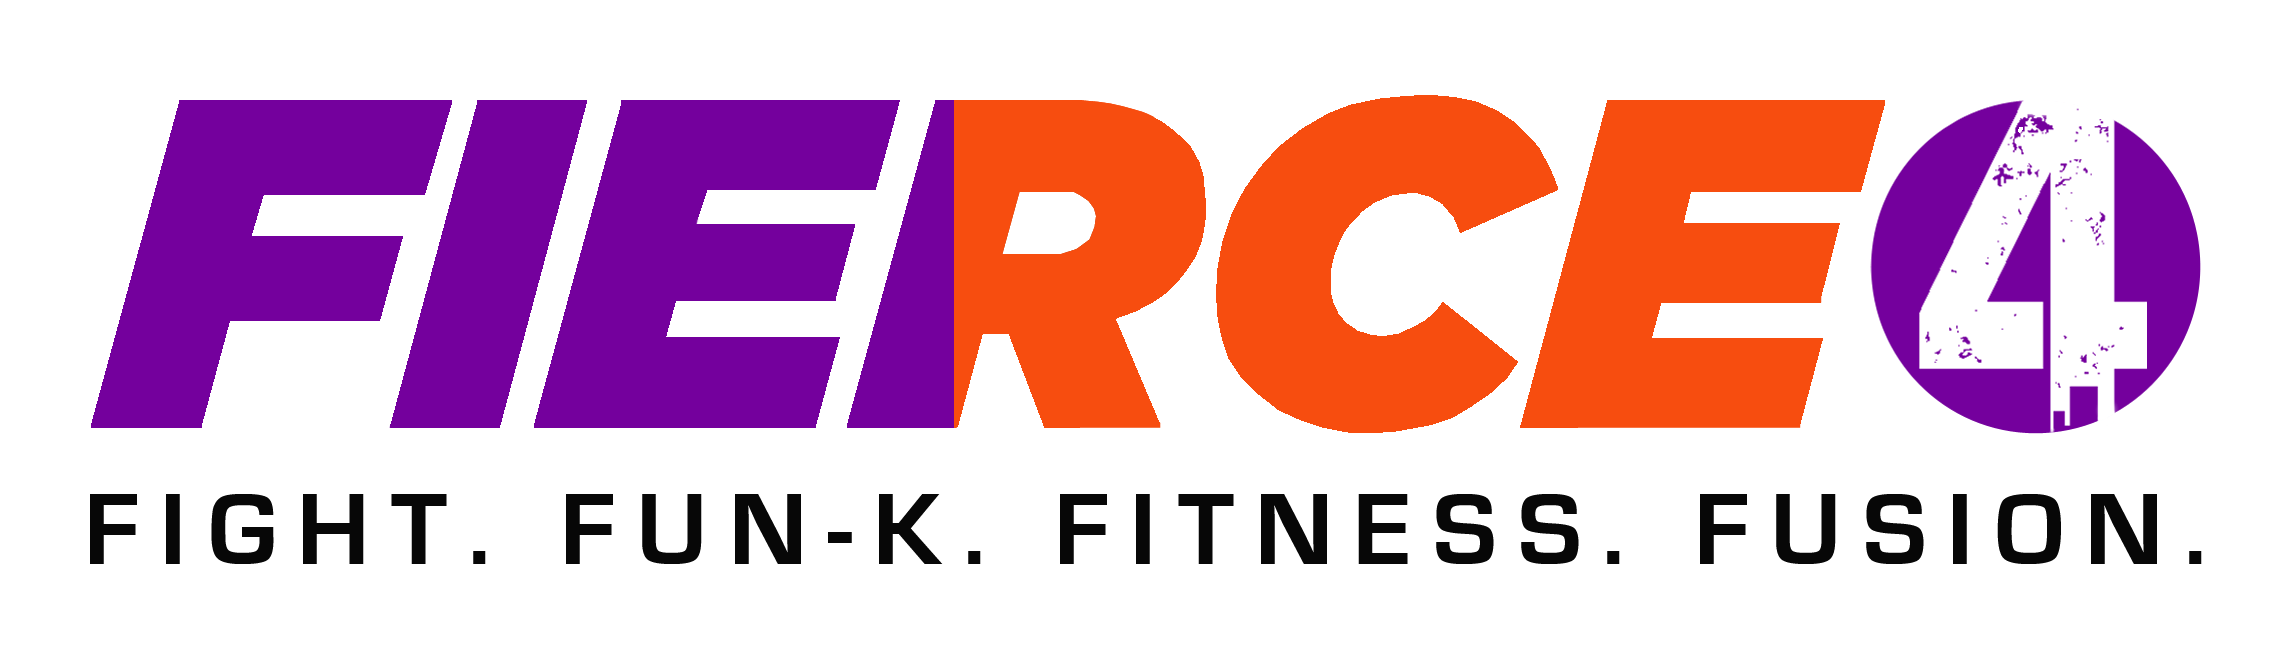 FIERCE4 Fitness